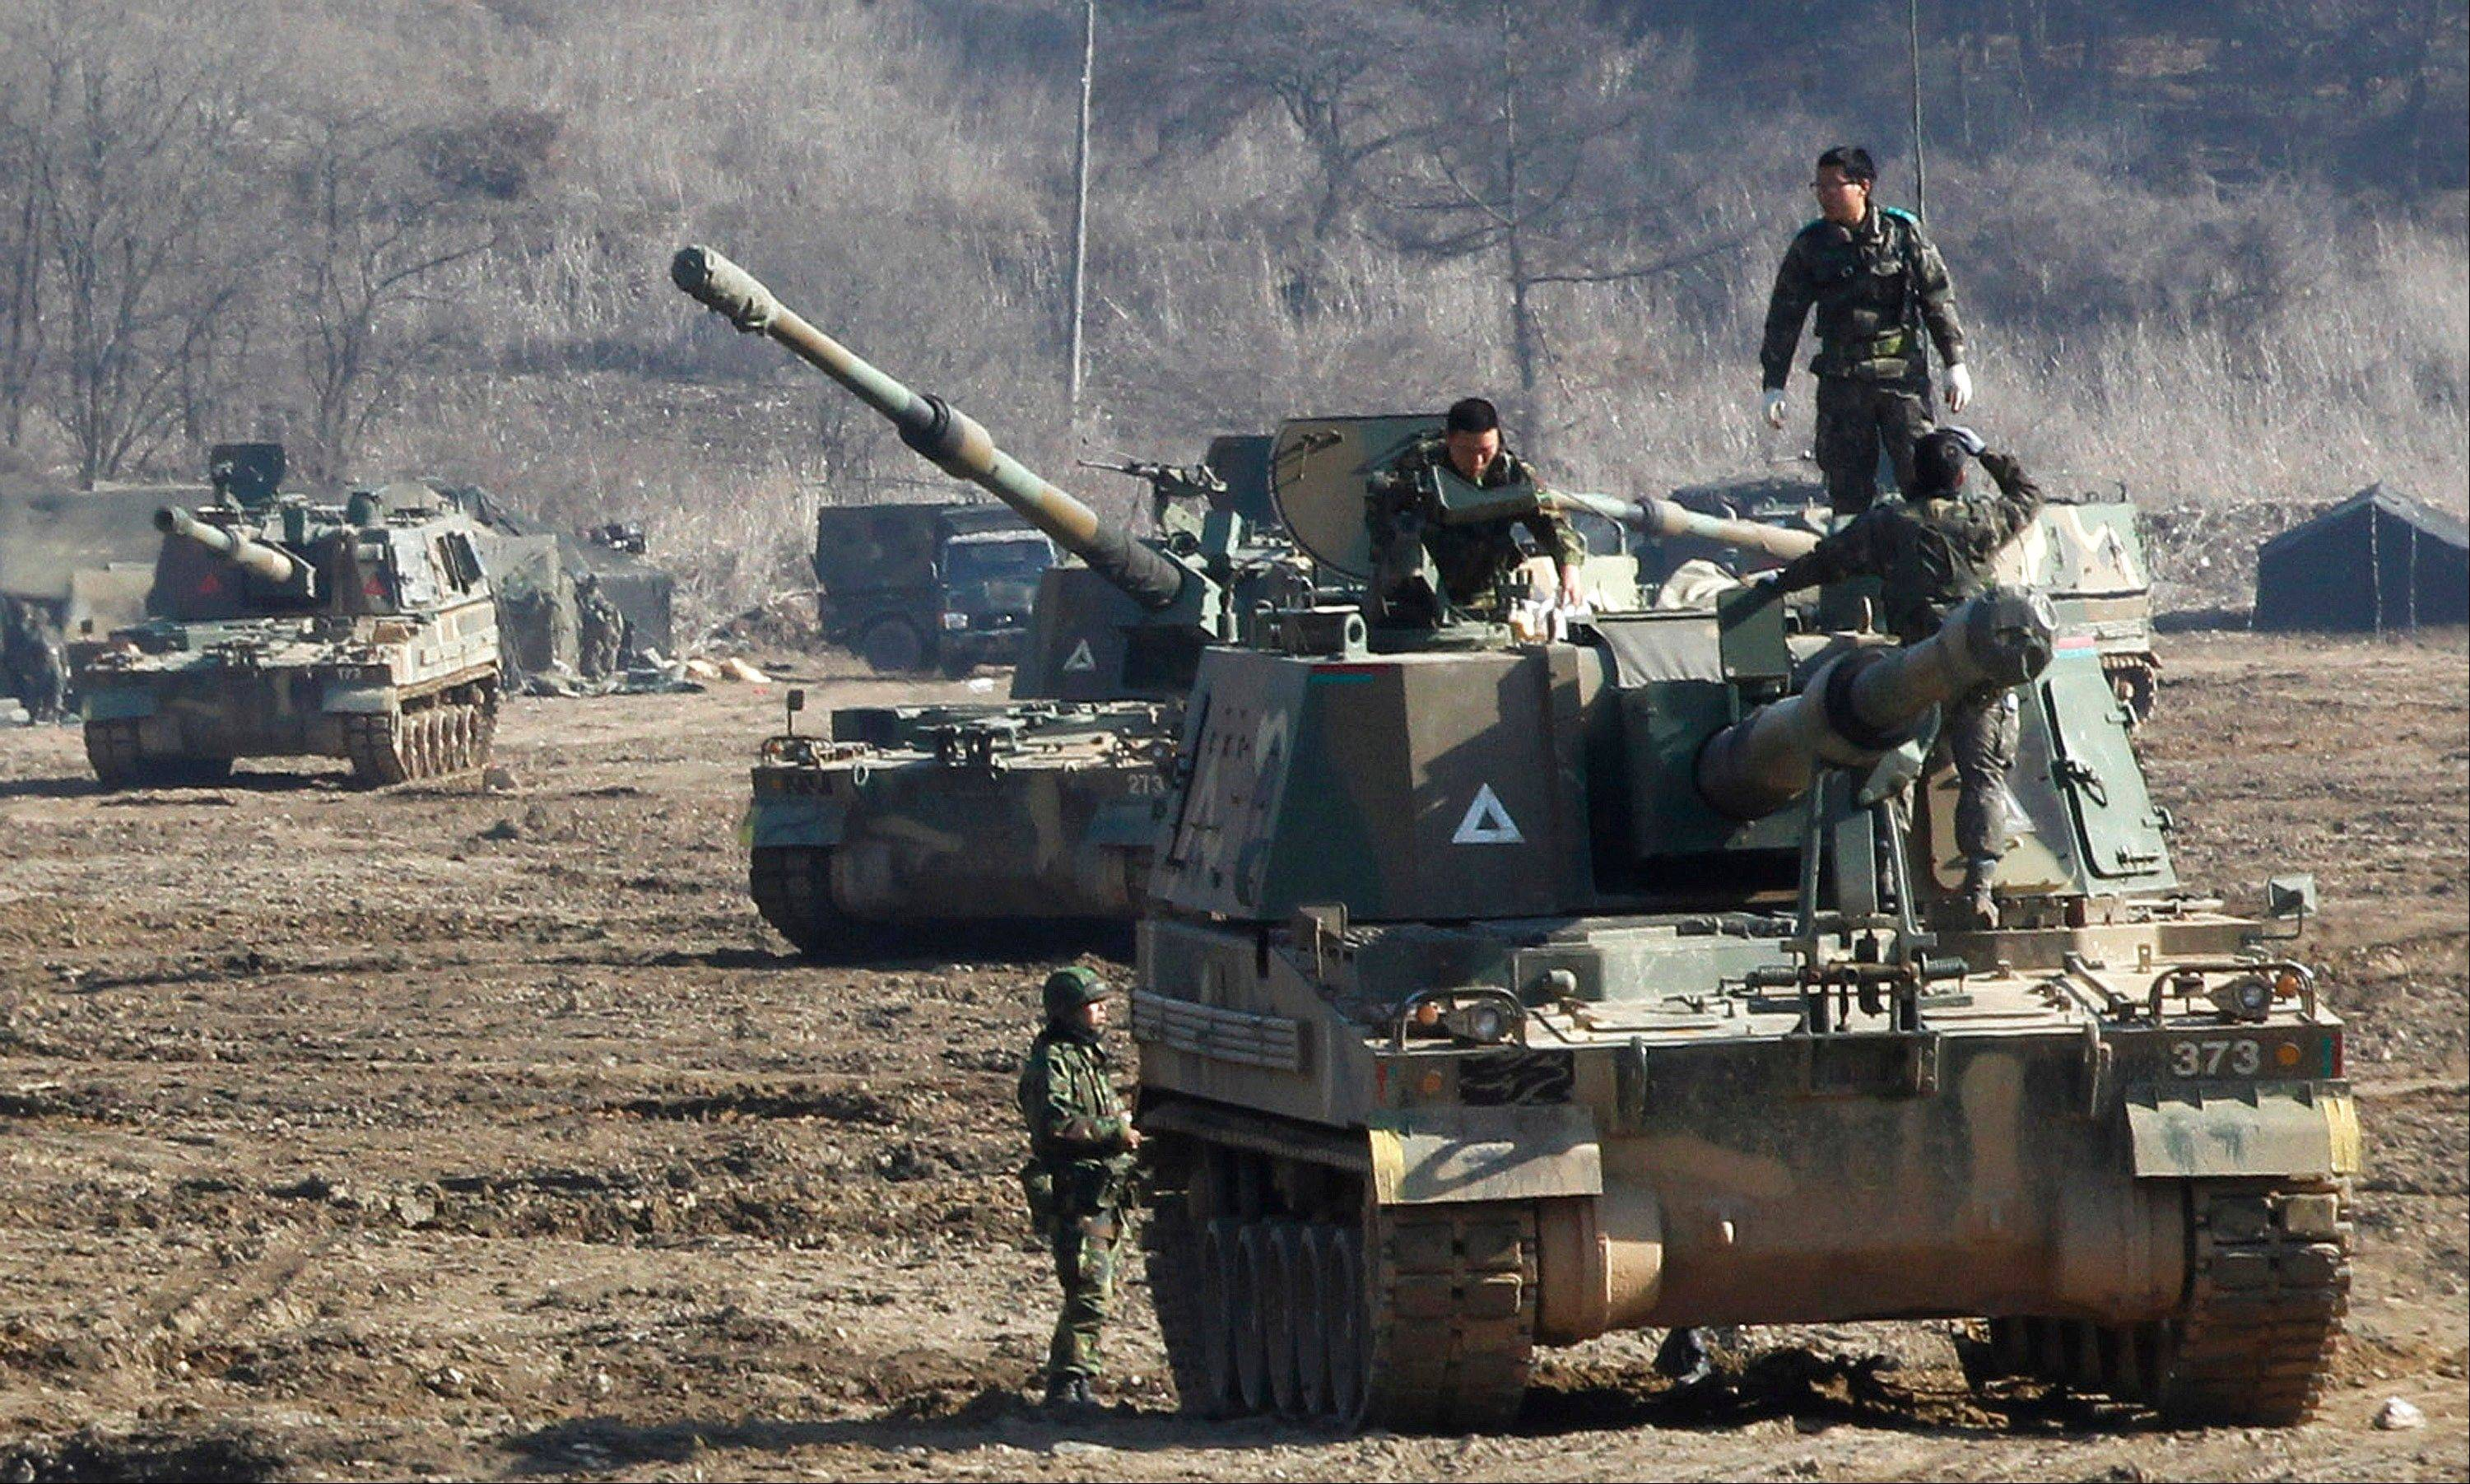 South Korean Army soldiers work on their K-9 self-propelled artillery vehicle during an exercise against possible attacks by North Korea near the border village of Panmunjom in Paju, South Korea, Monday.